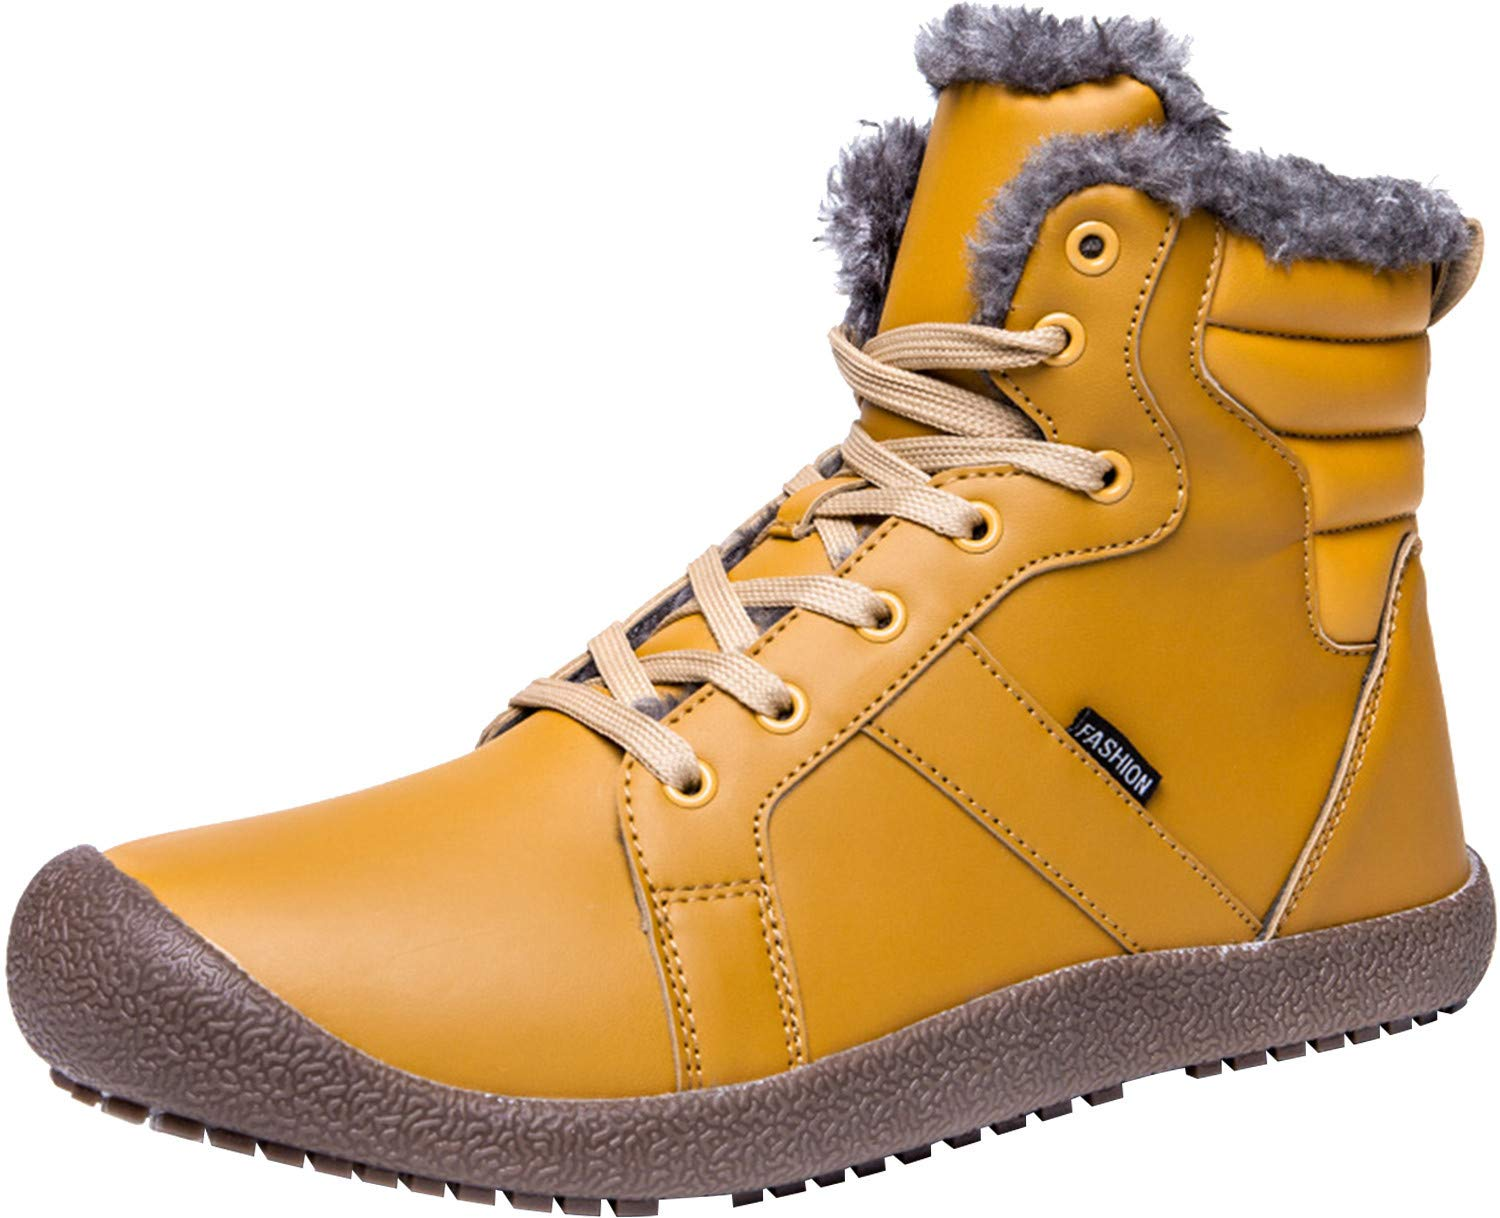 JIASUQI Classic Athletic Short Winter Boots Insulated Snow Booties for Women Yellow 8.5 M US